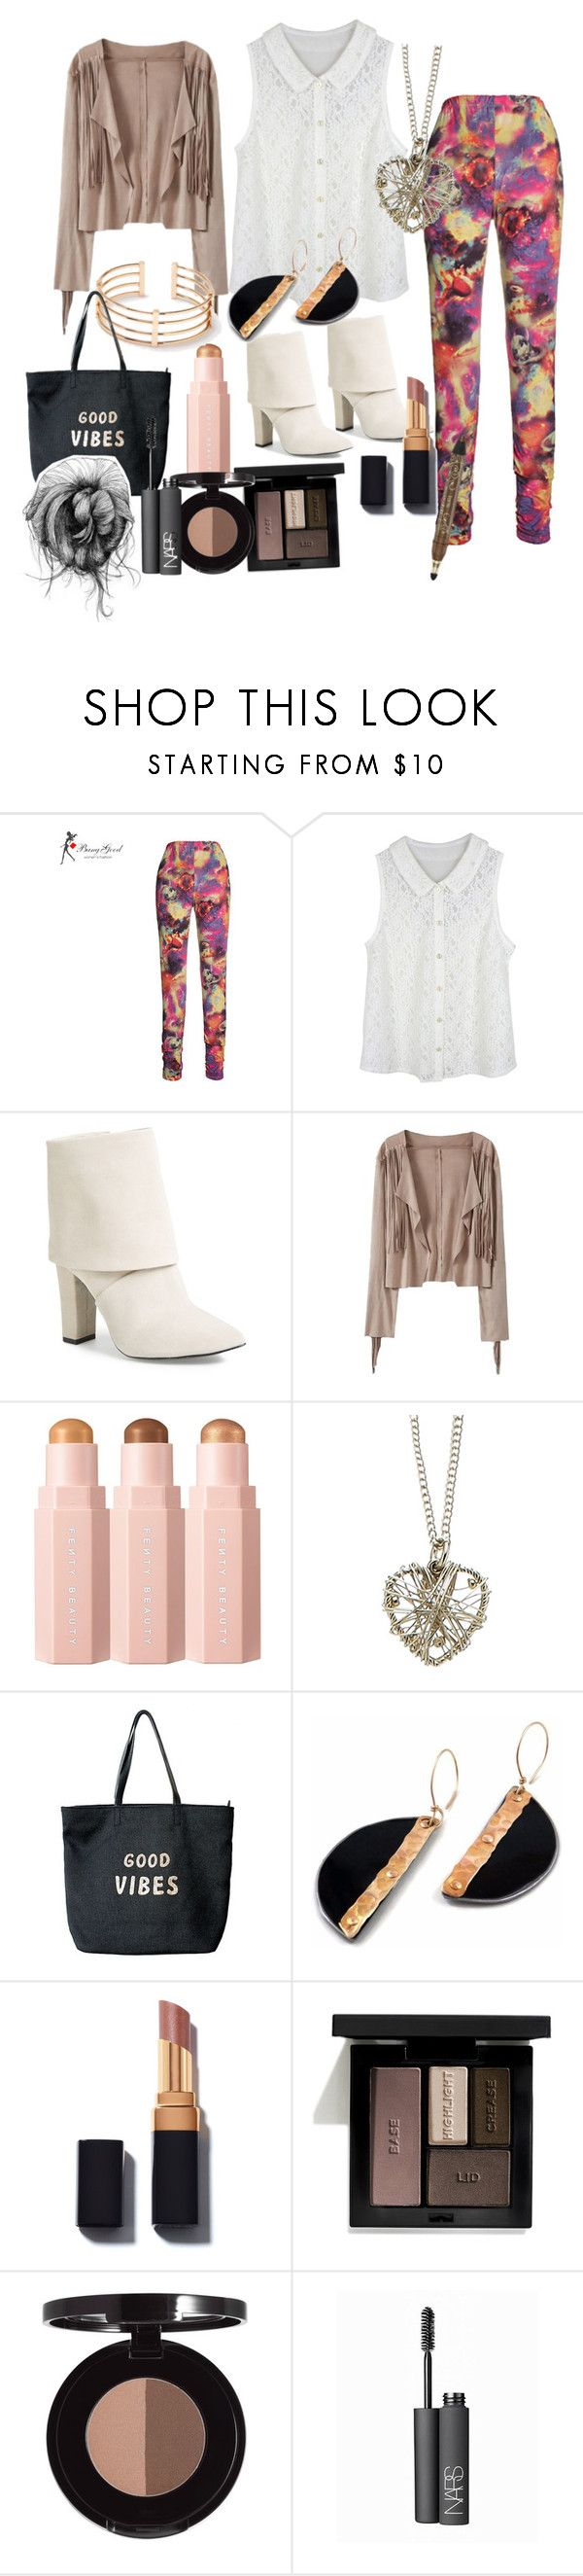 """""""Sammi McCall's party outfit"""" by samtiritilli ❤ liked on Polyvore featuring Vince Camuto, Accessorize, Venus, Victoria's Secret, tarte, Anastasia Beverly Hills and NARS Cosmetics"""